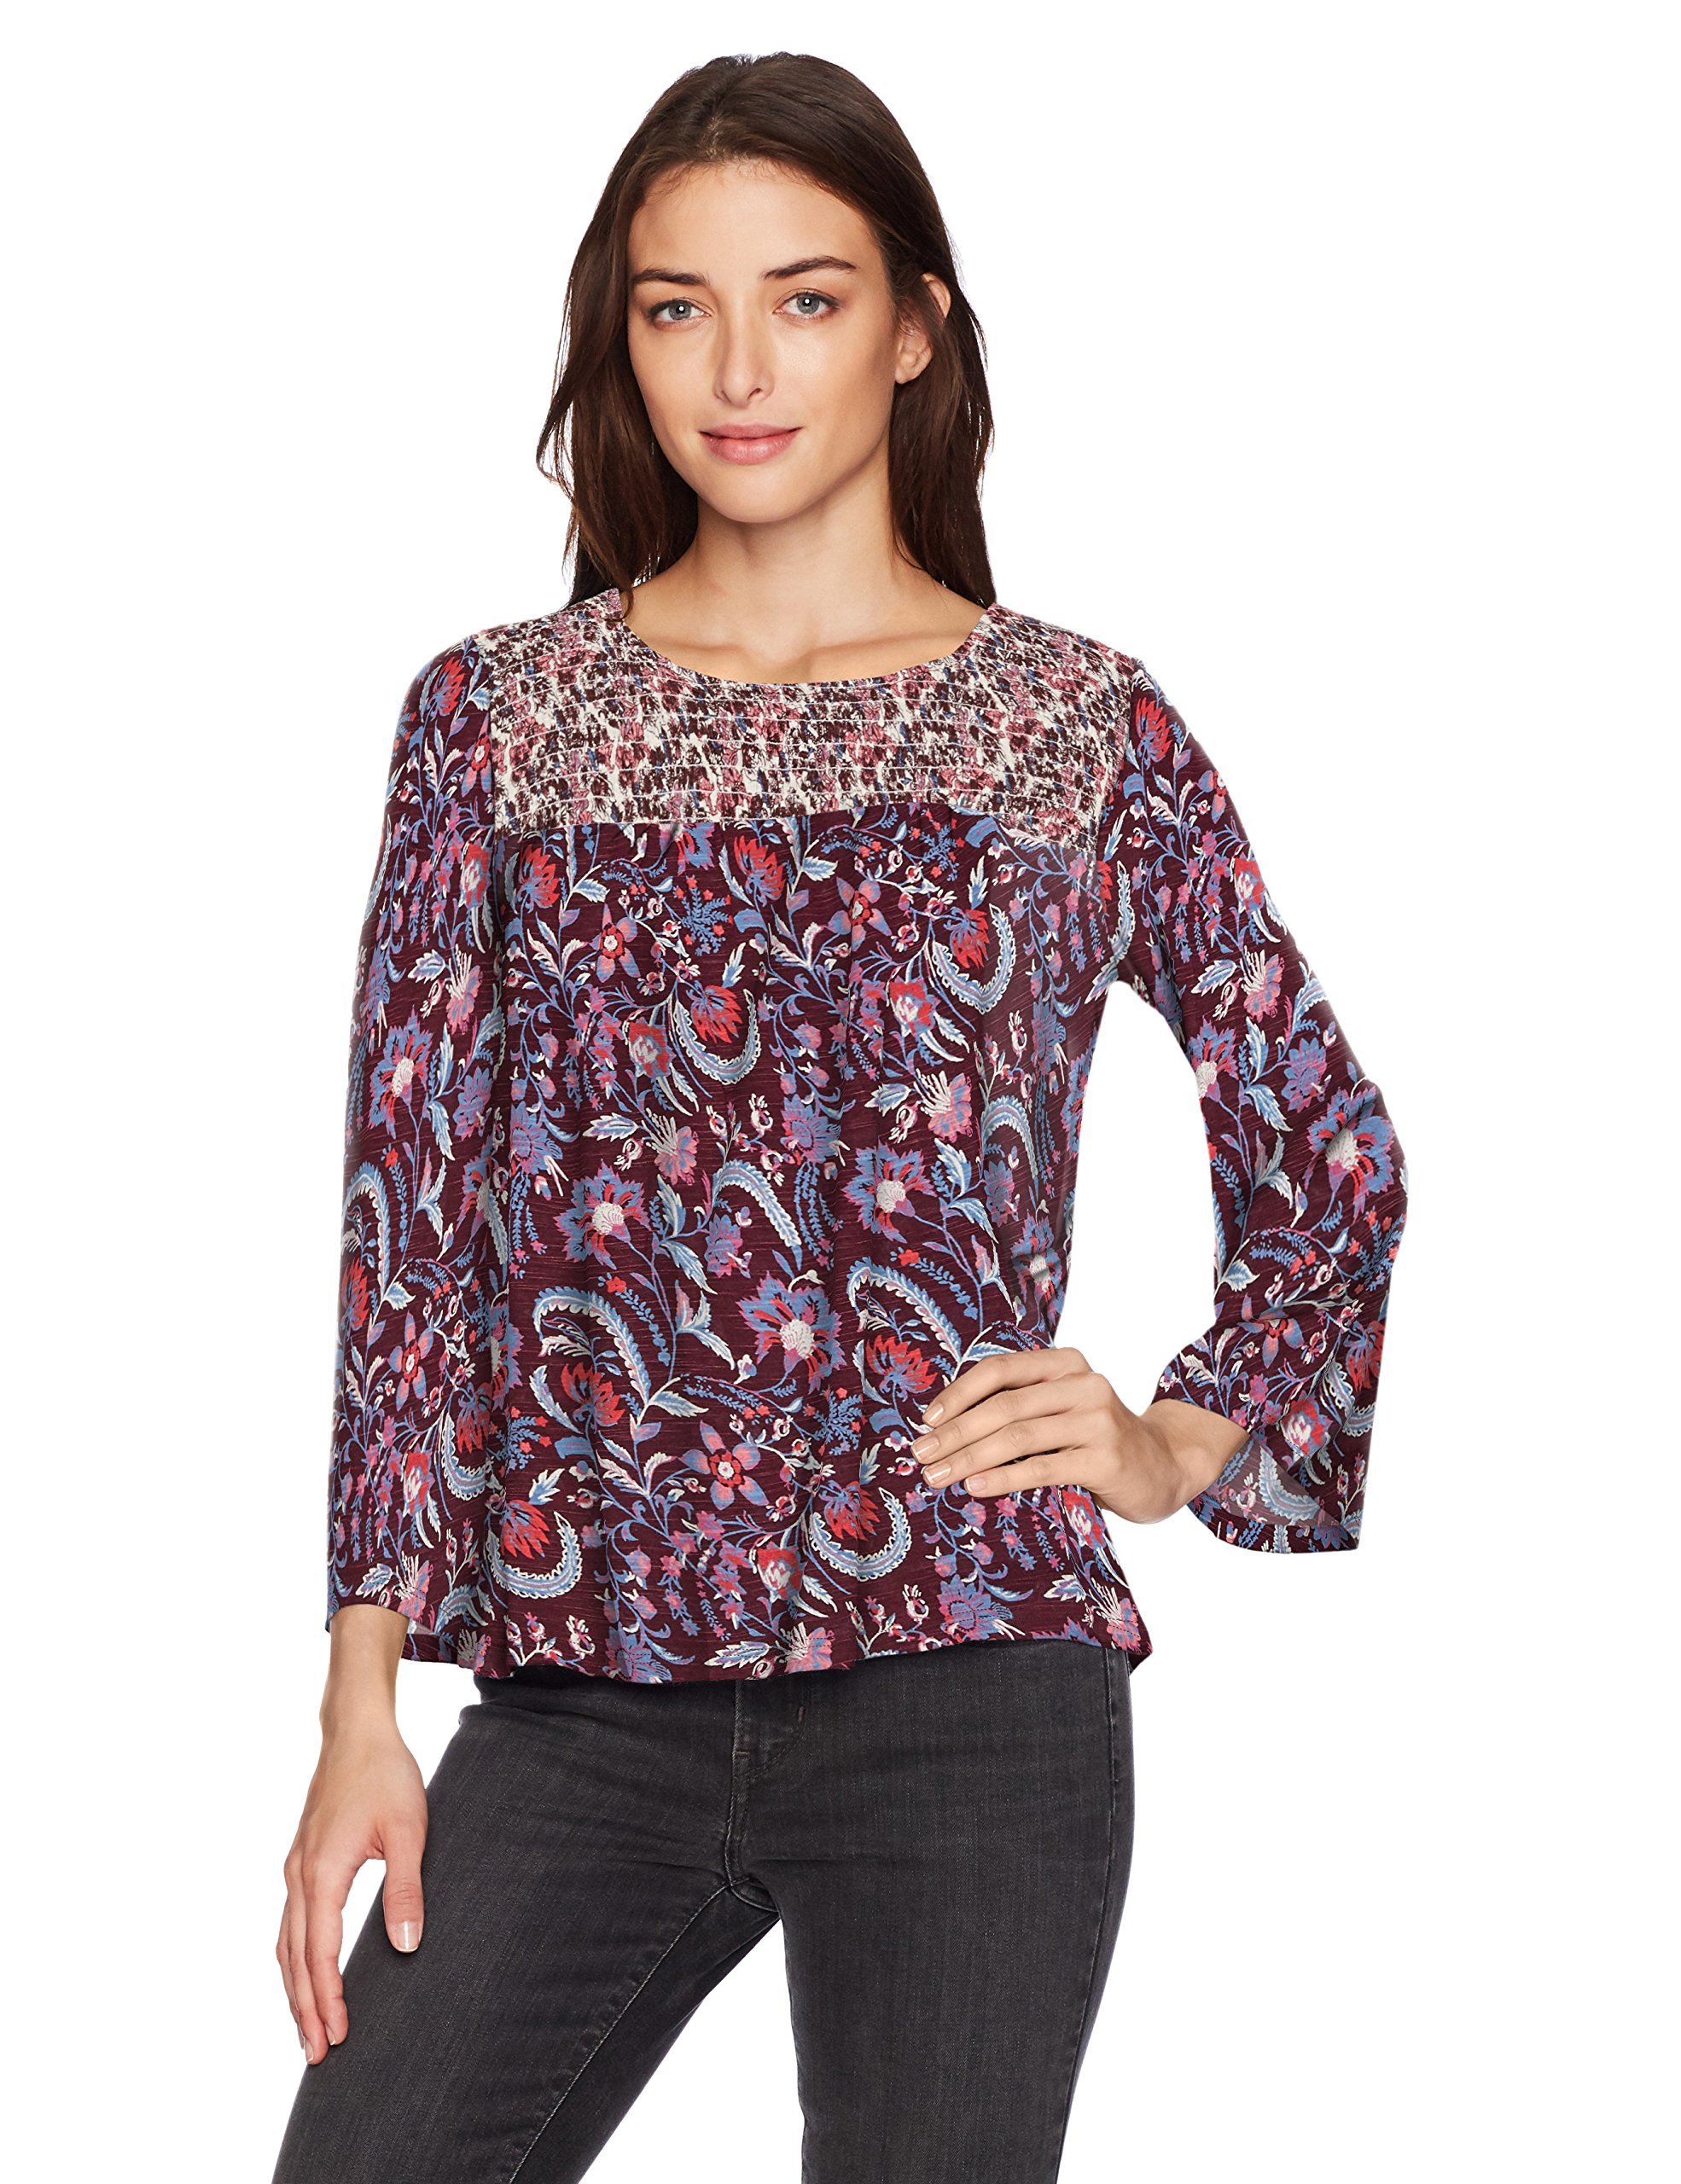 Lucky Brand Women's Mixed Print Smocked Top, Red/Multi, Medium